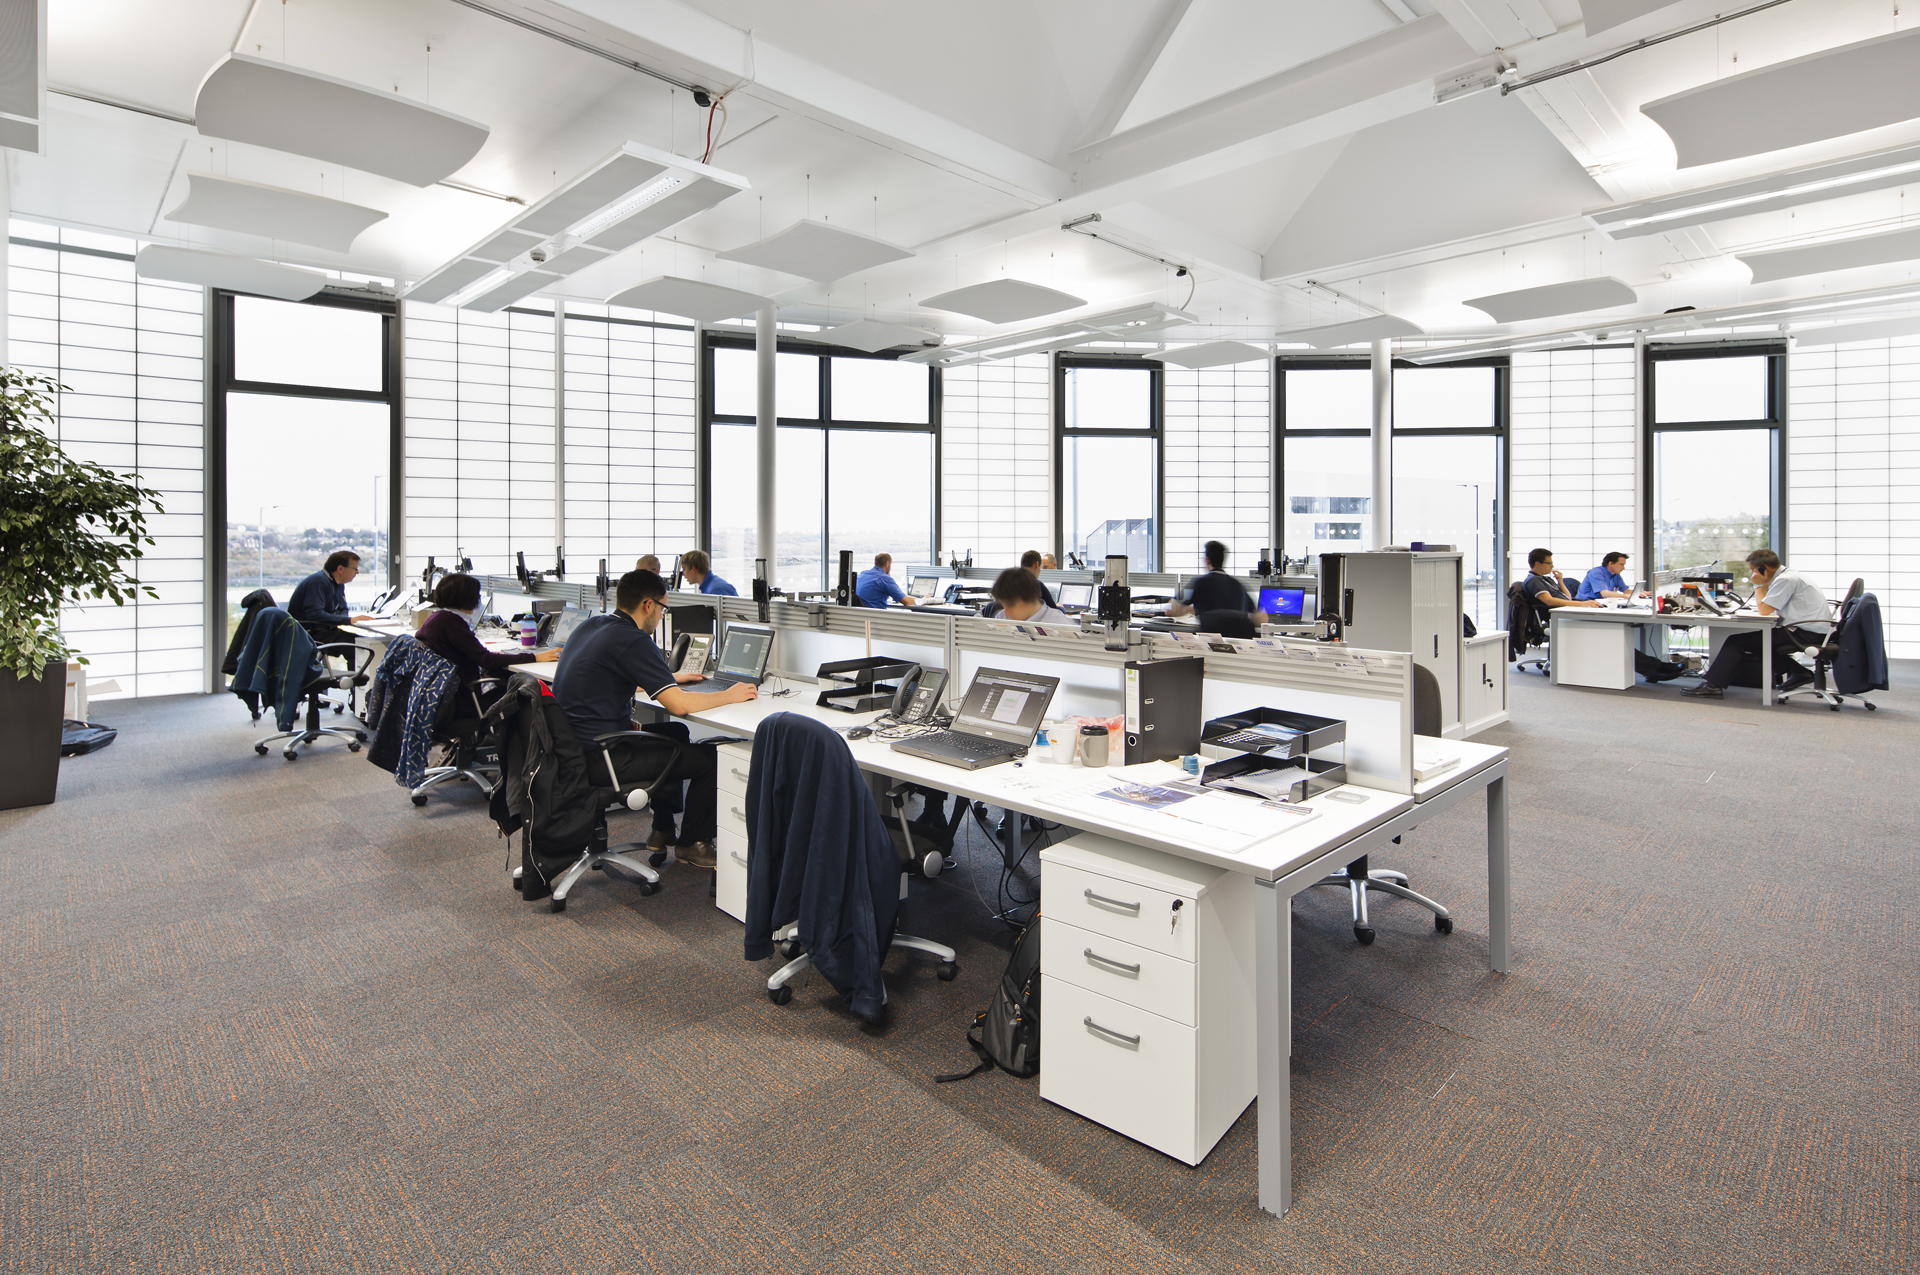 Outstanding Home Office Sheffield Contact Number Frieze - Home ...